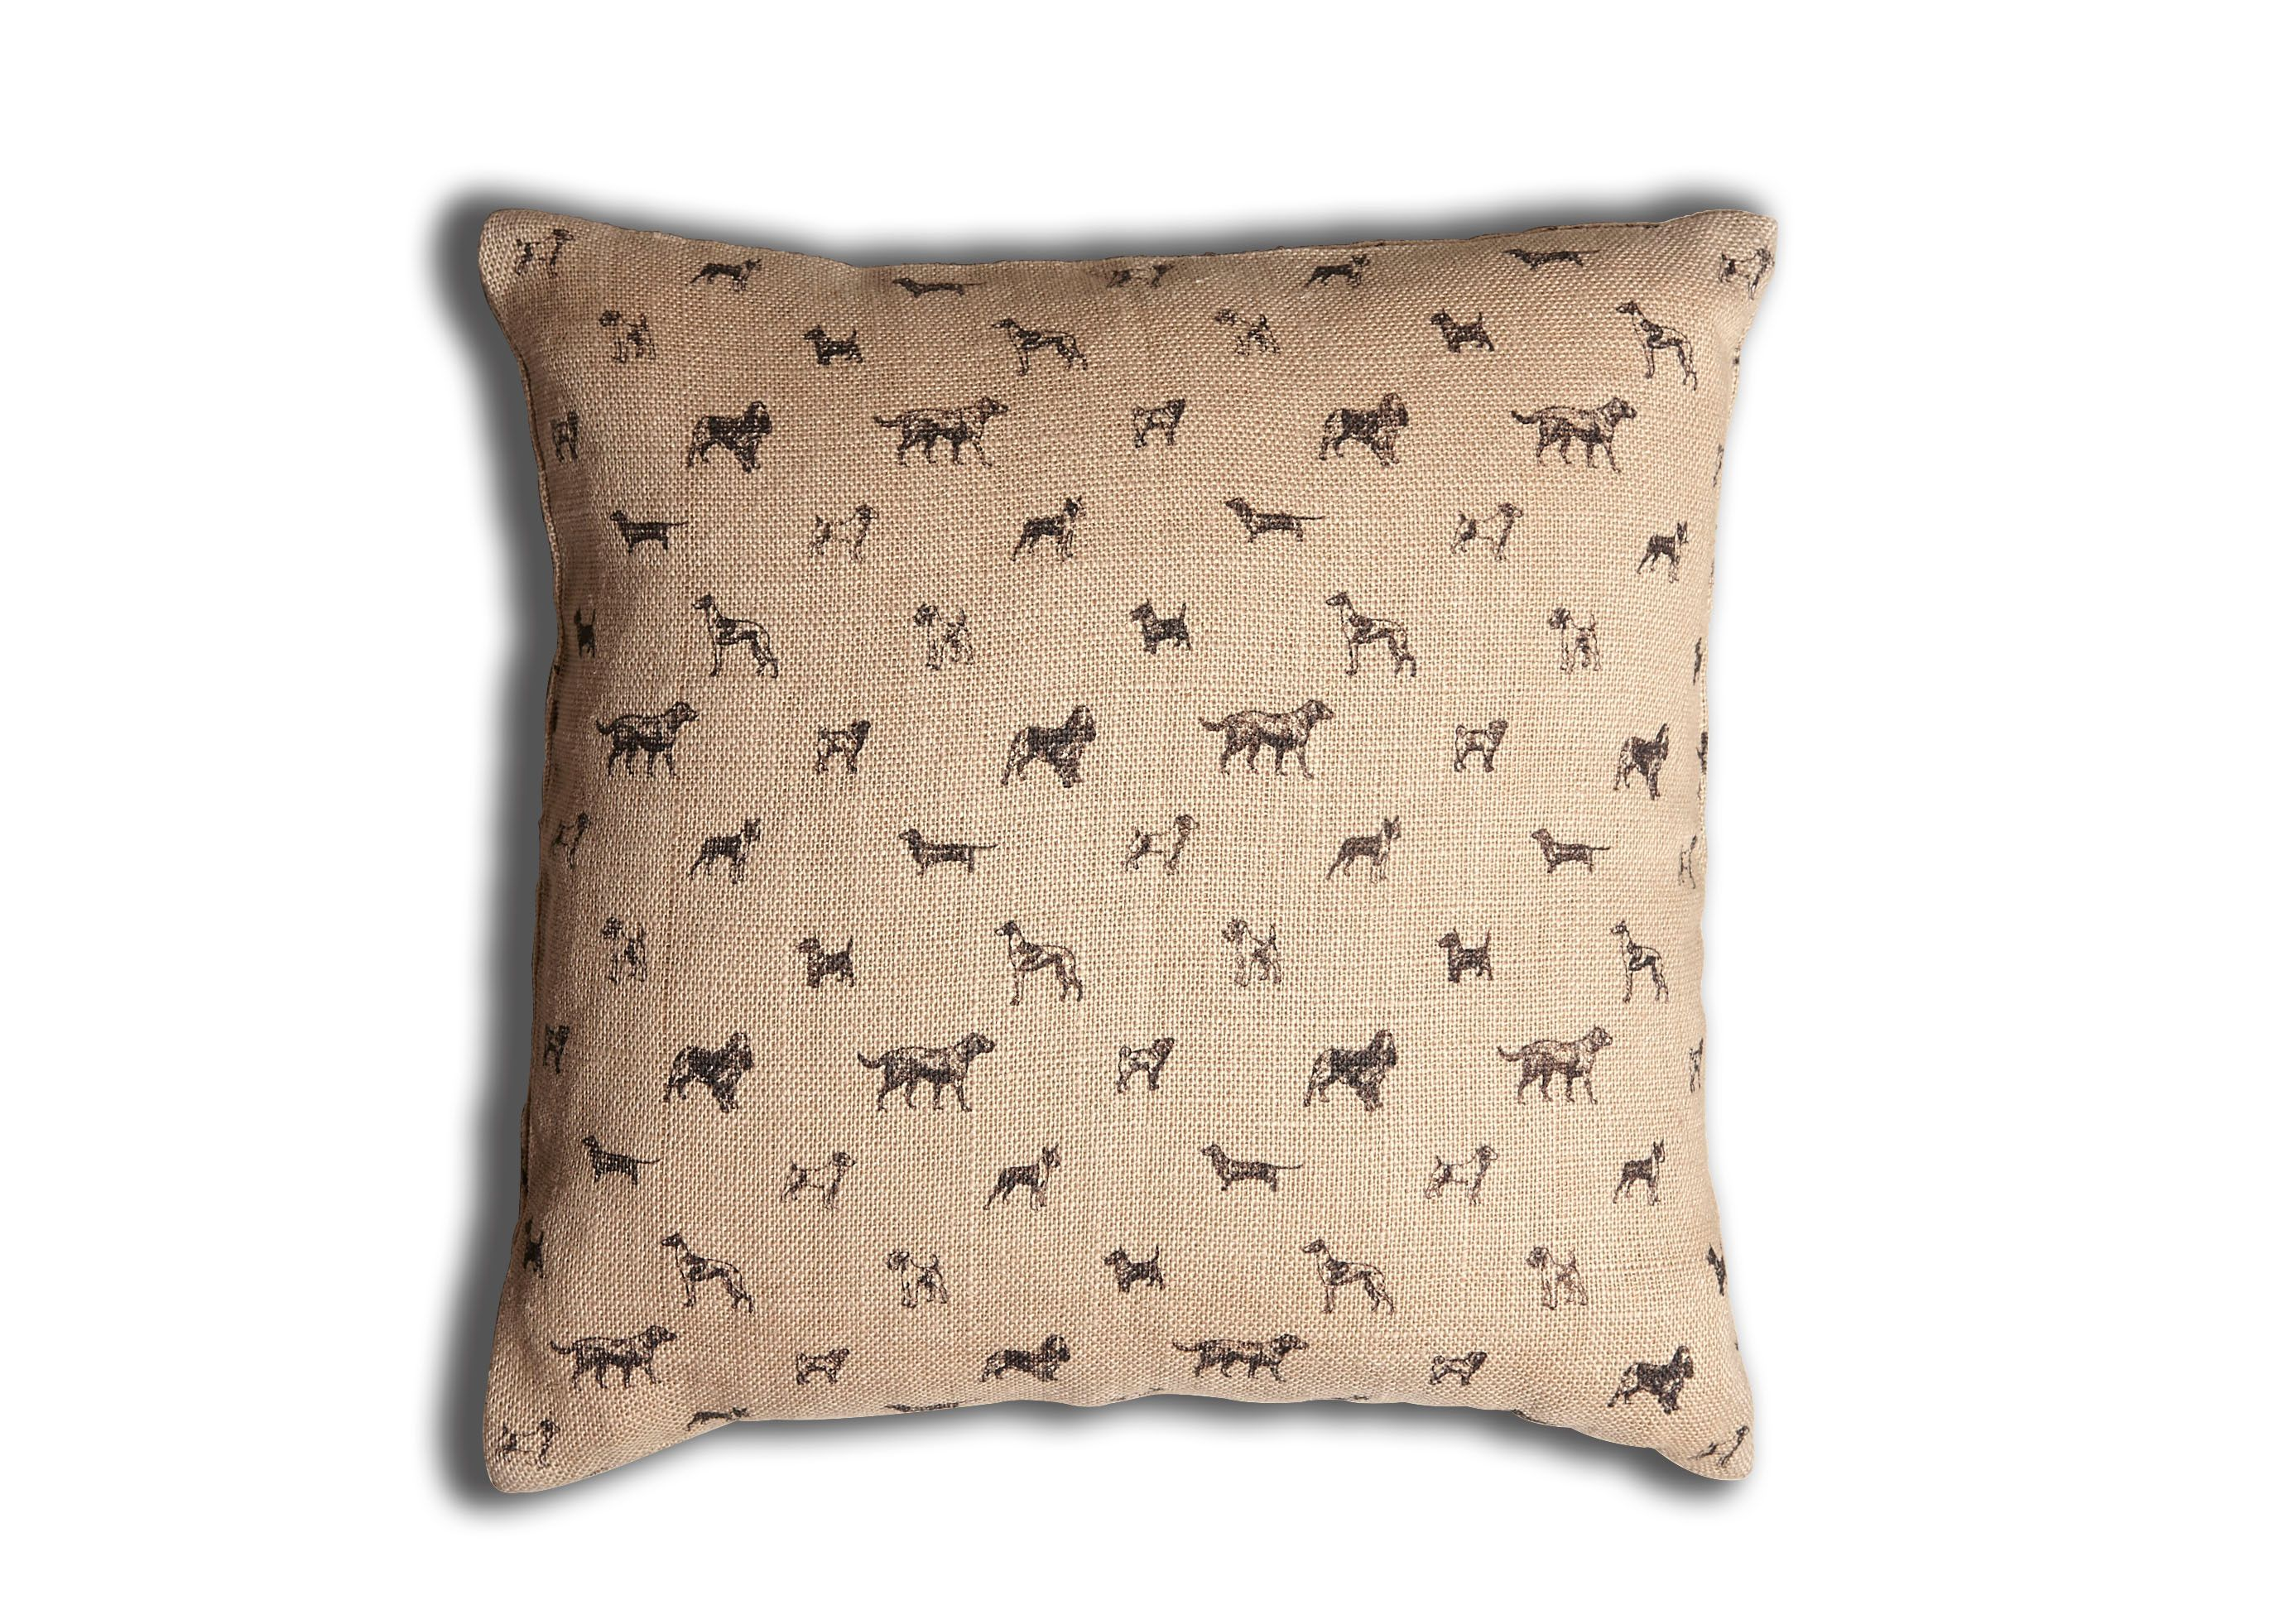 All The Breeds cushion